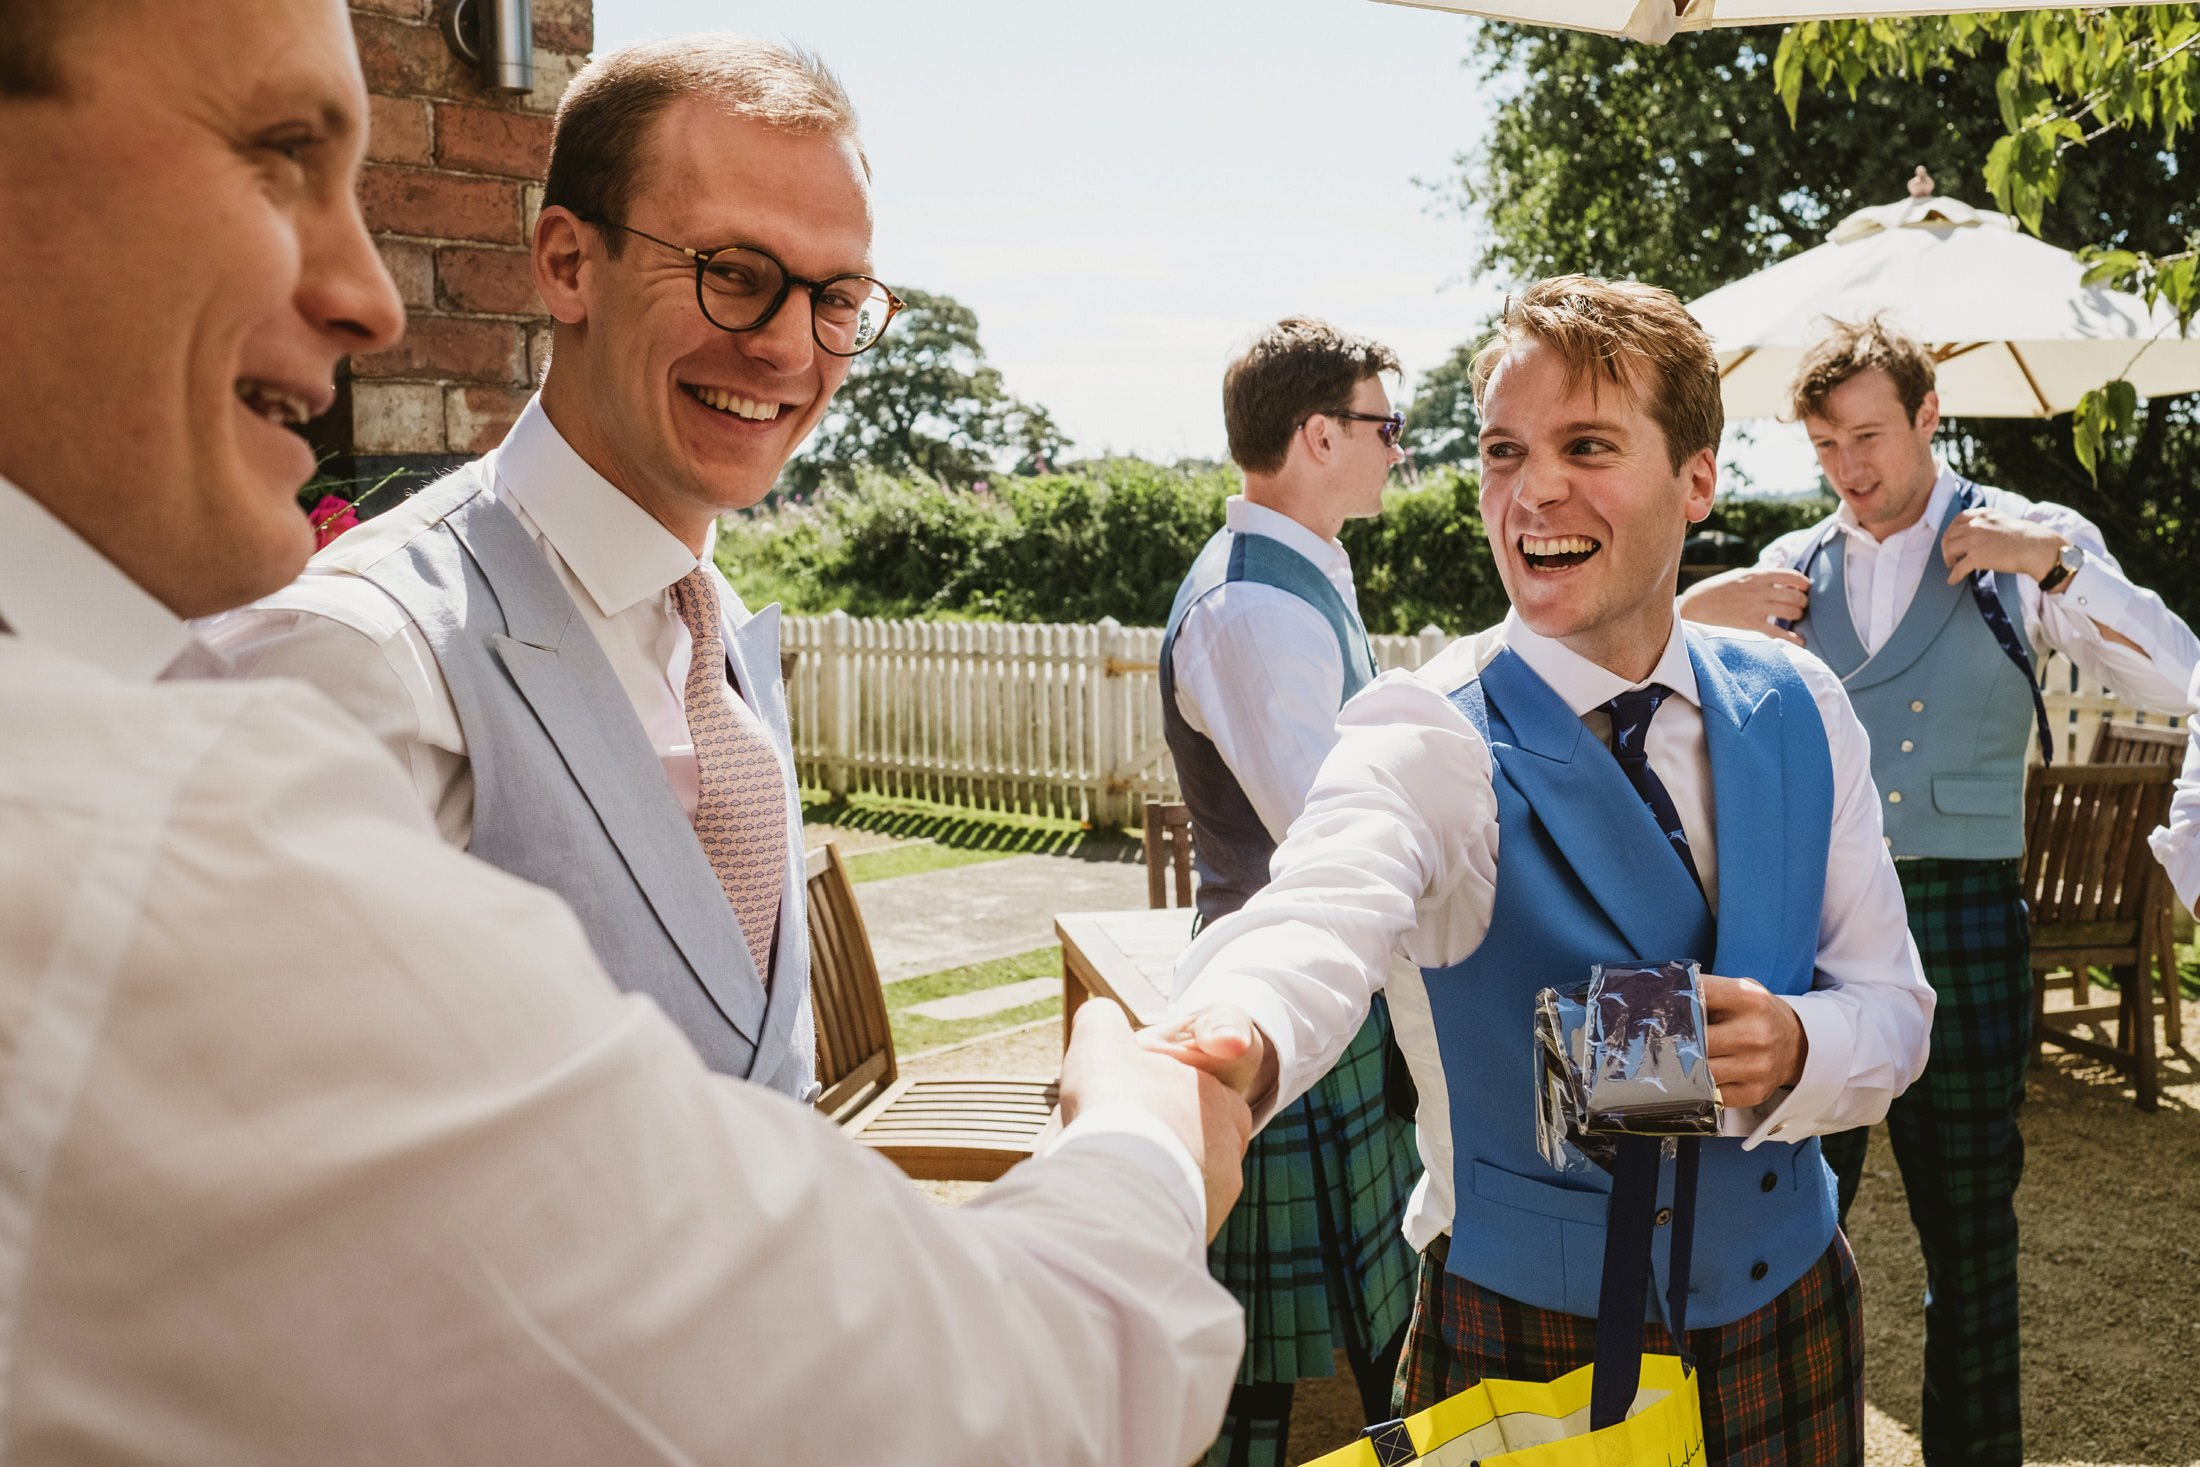 groom shaking hands with groomsmen at a Cheshire pub